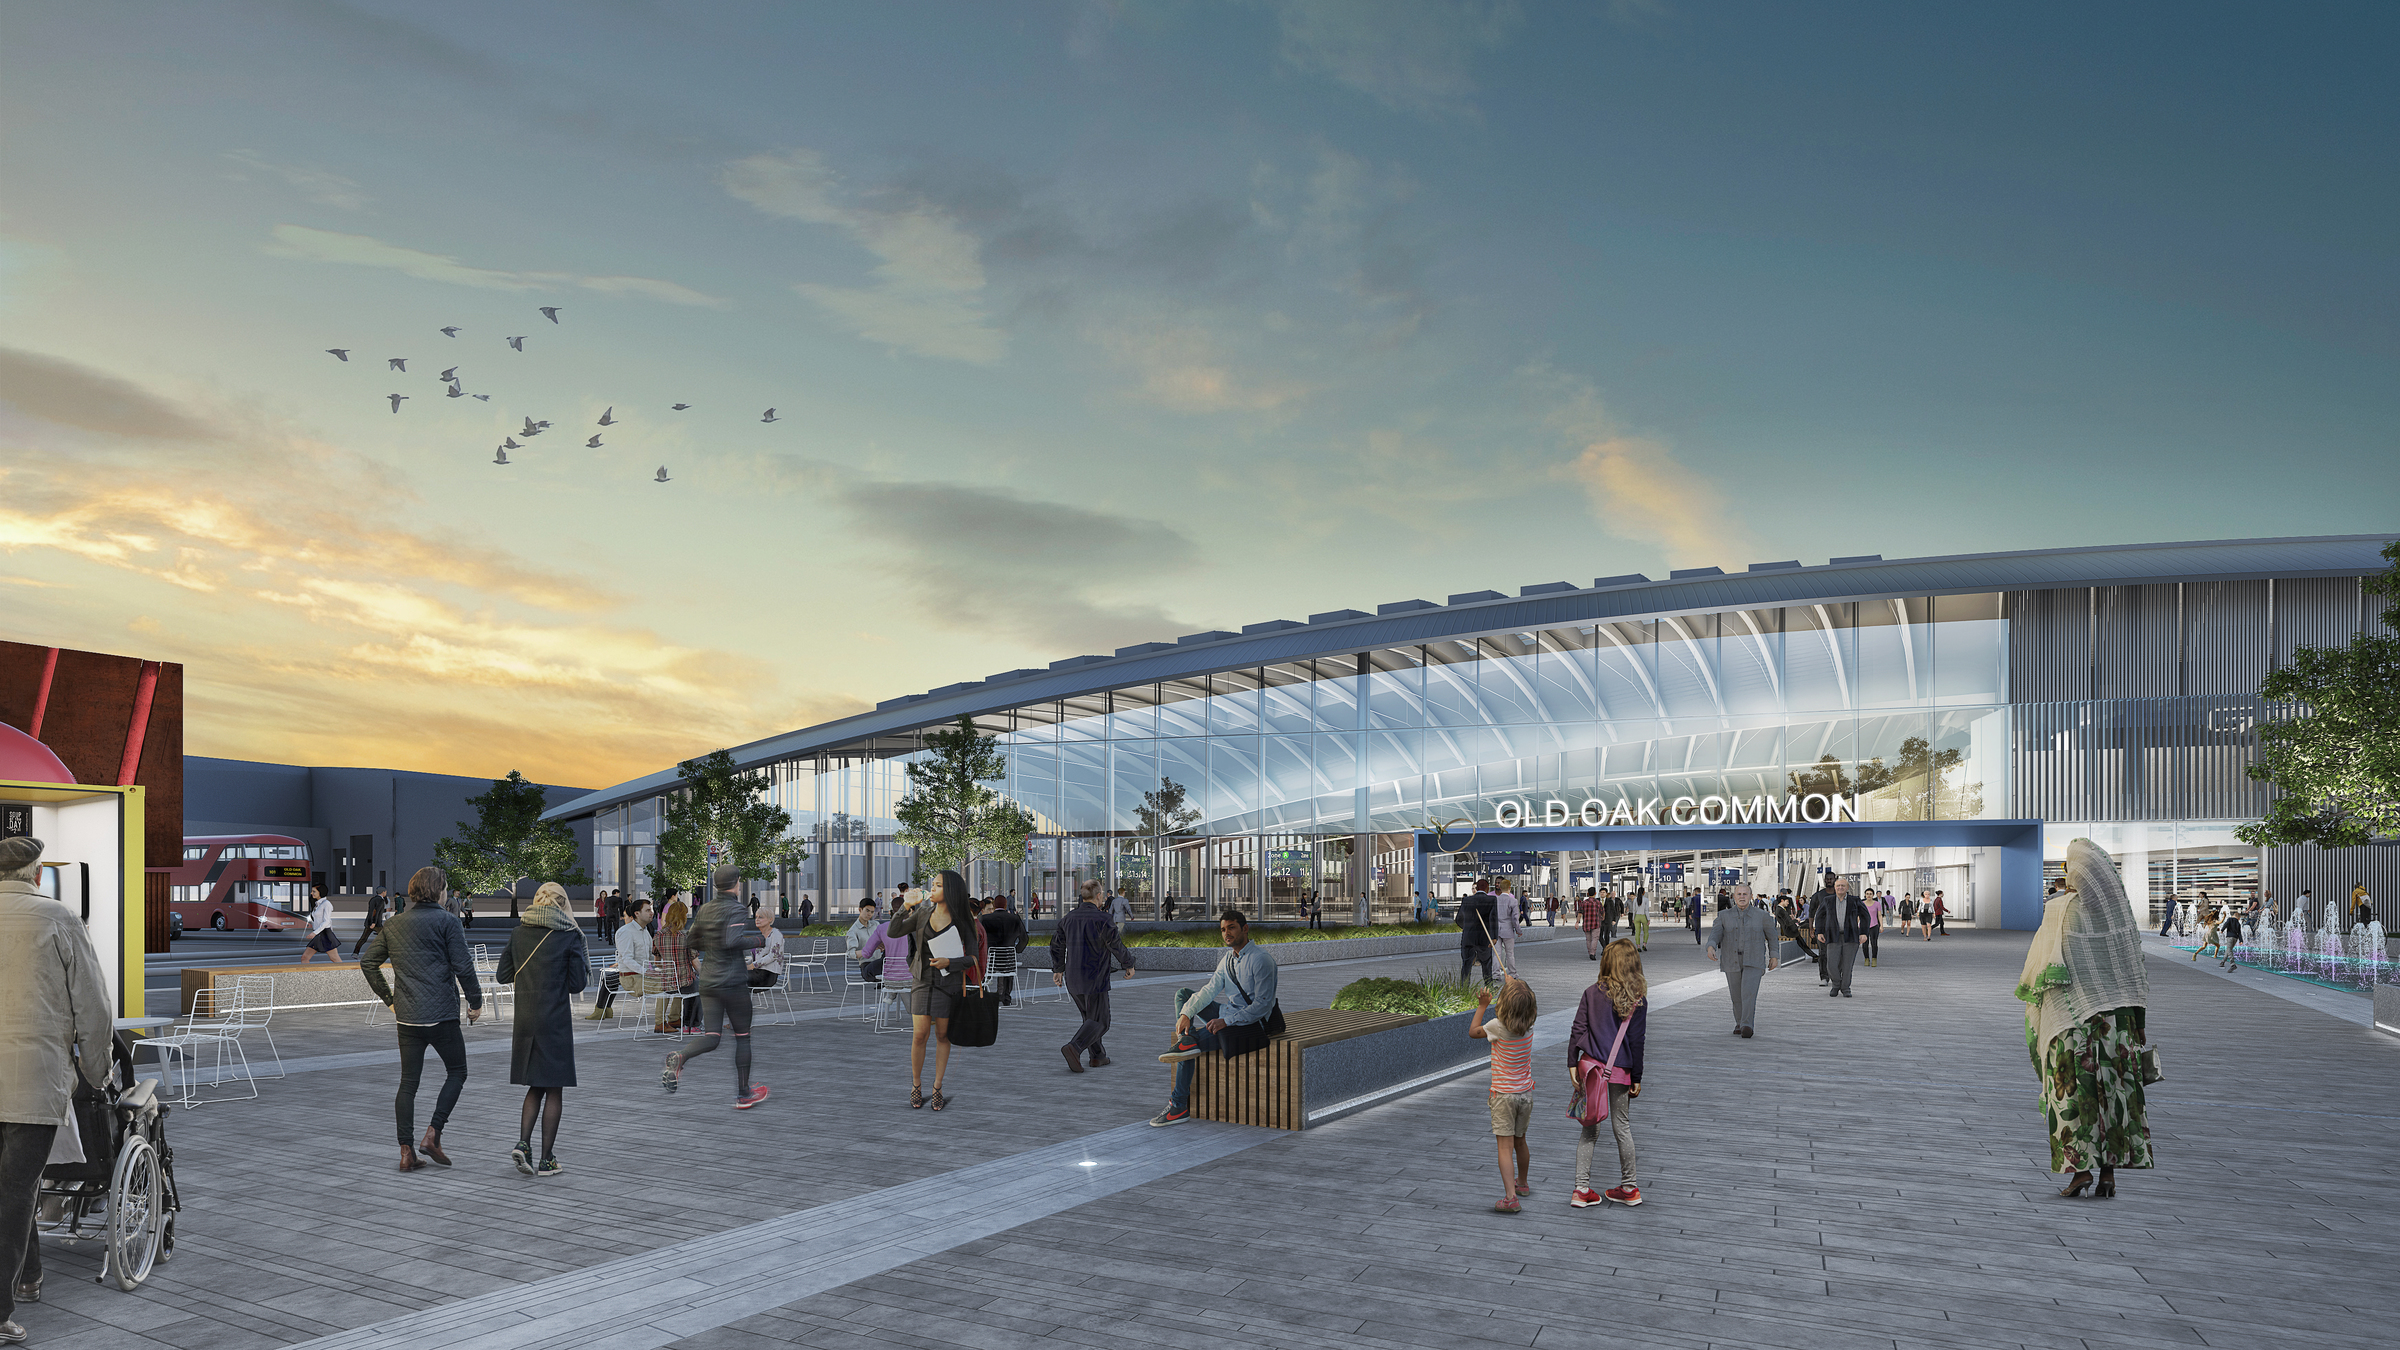 artist's impression of Old Oak Common station